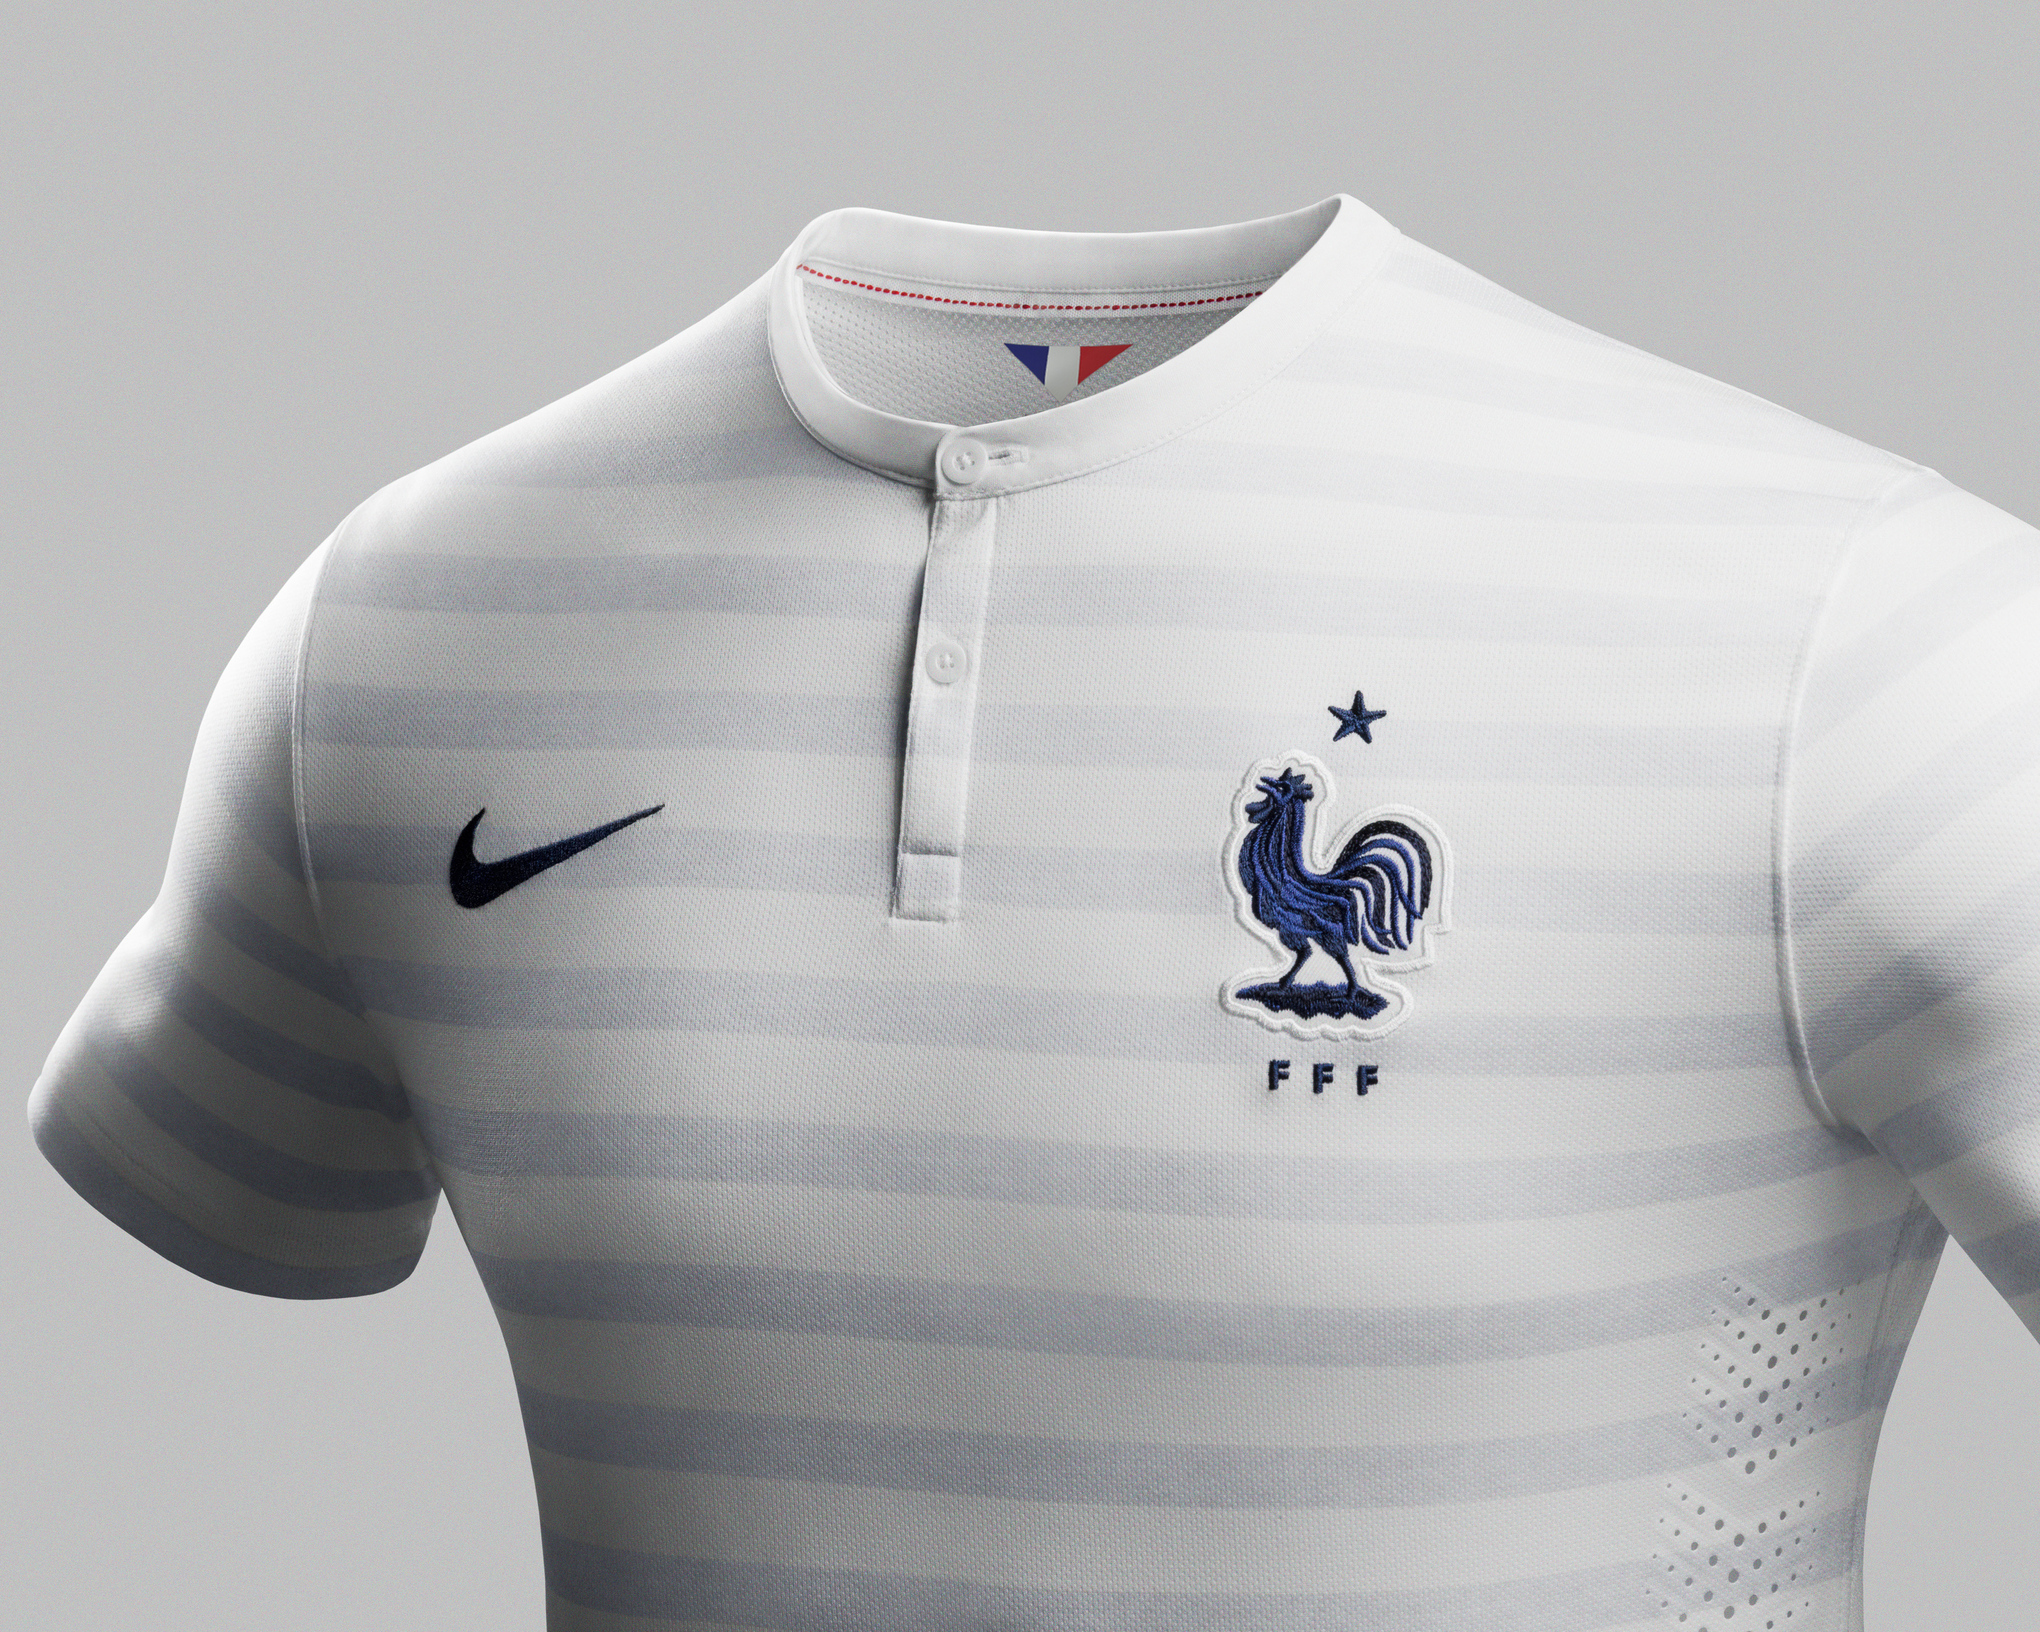 FRANCE_AWAY_BADGECOLLAR_FULL_MEDRES_REVISED_original_FR_HD_original__1_